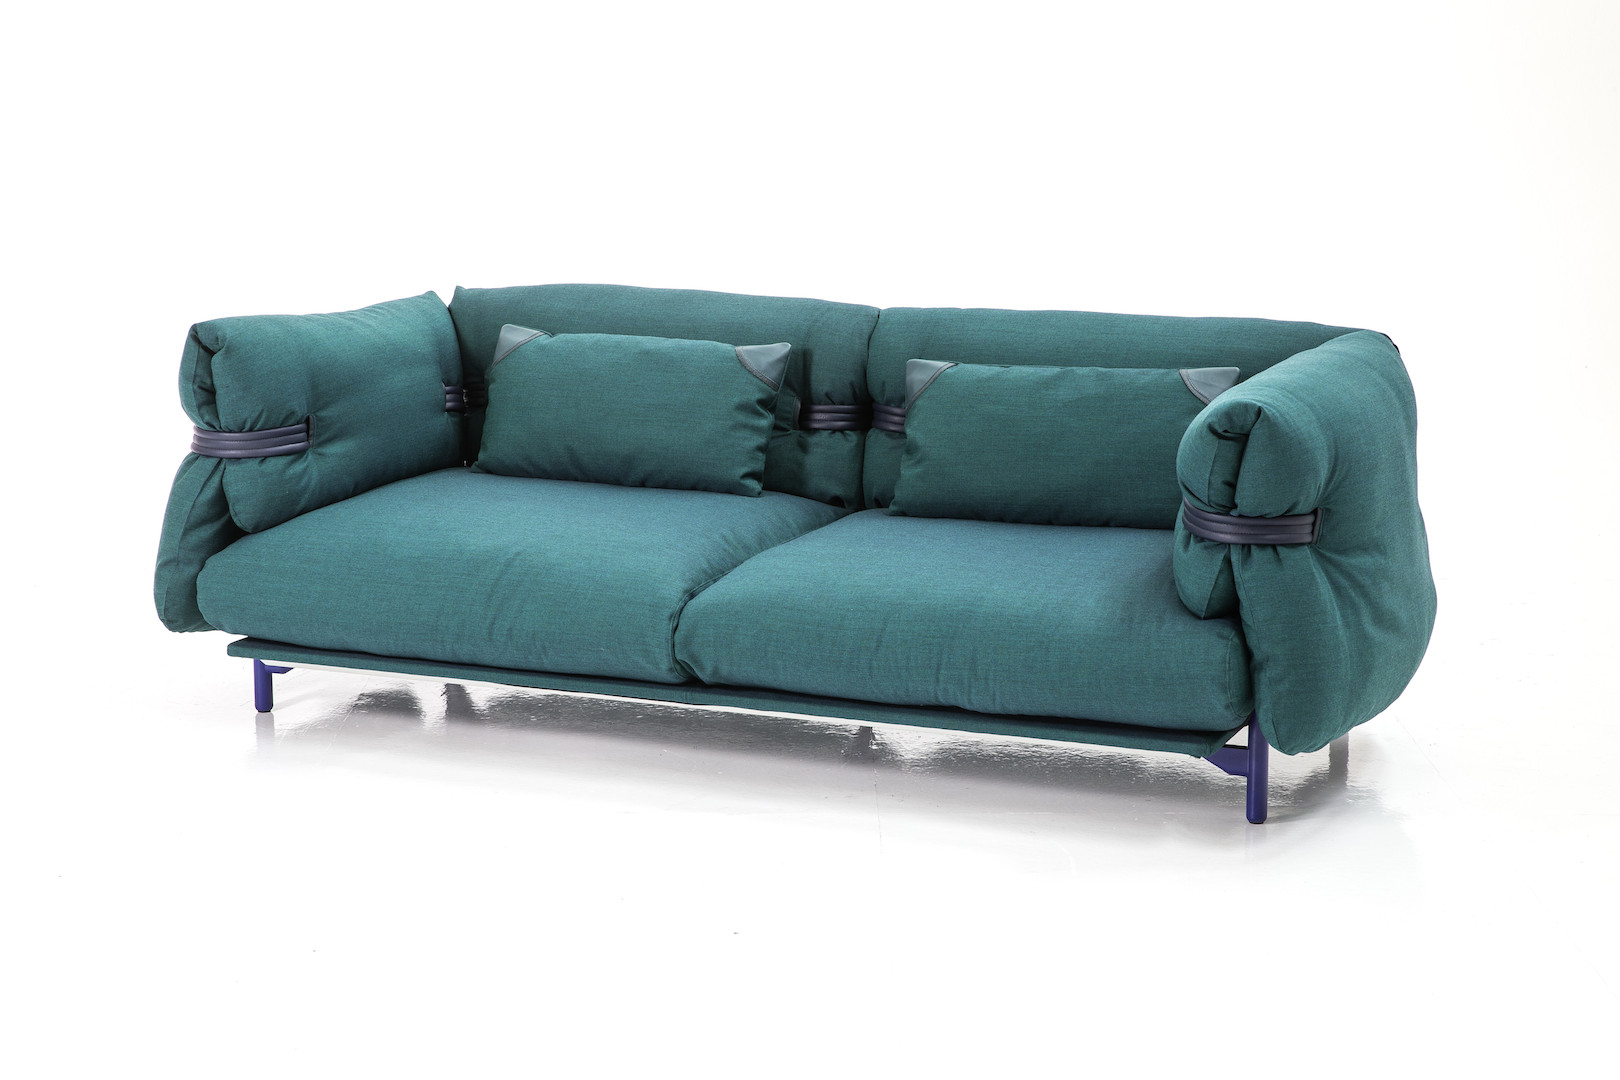 New Belt Sofa designed by Patricia Urquiola 1.jpg